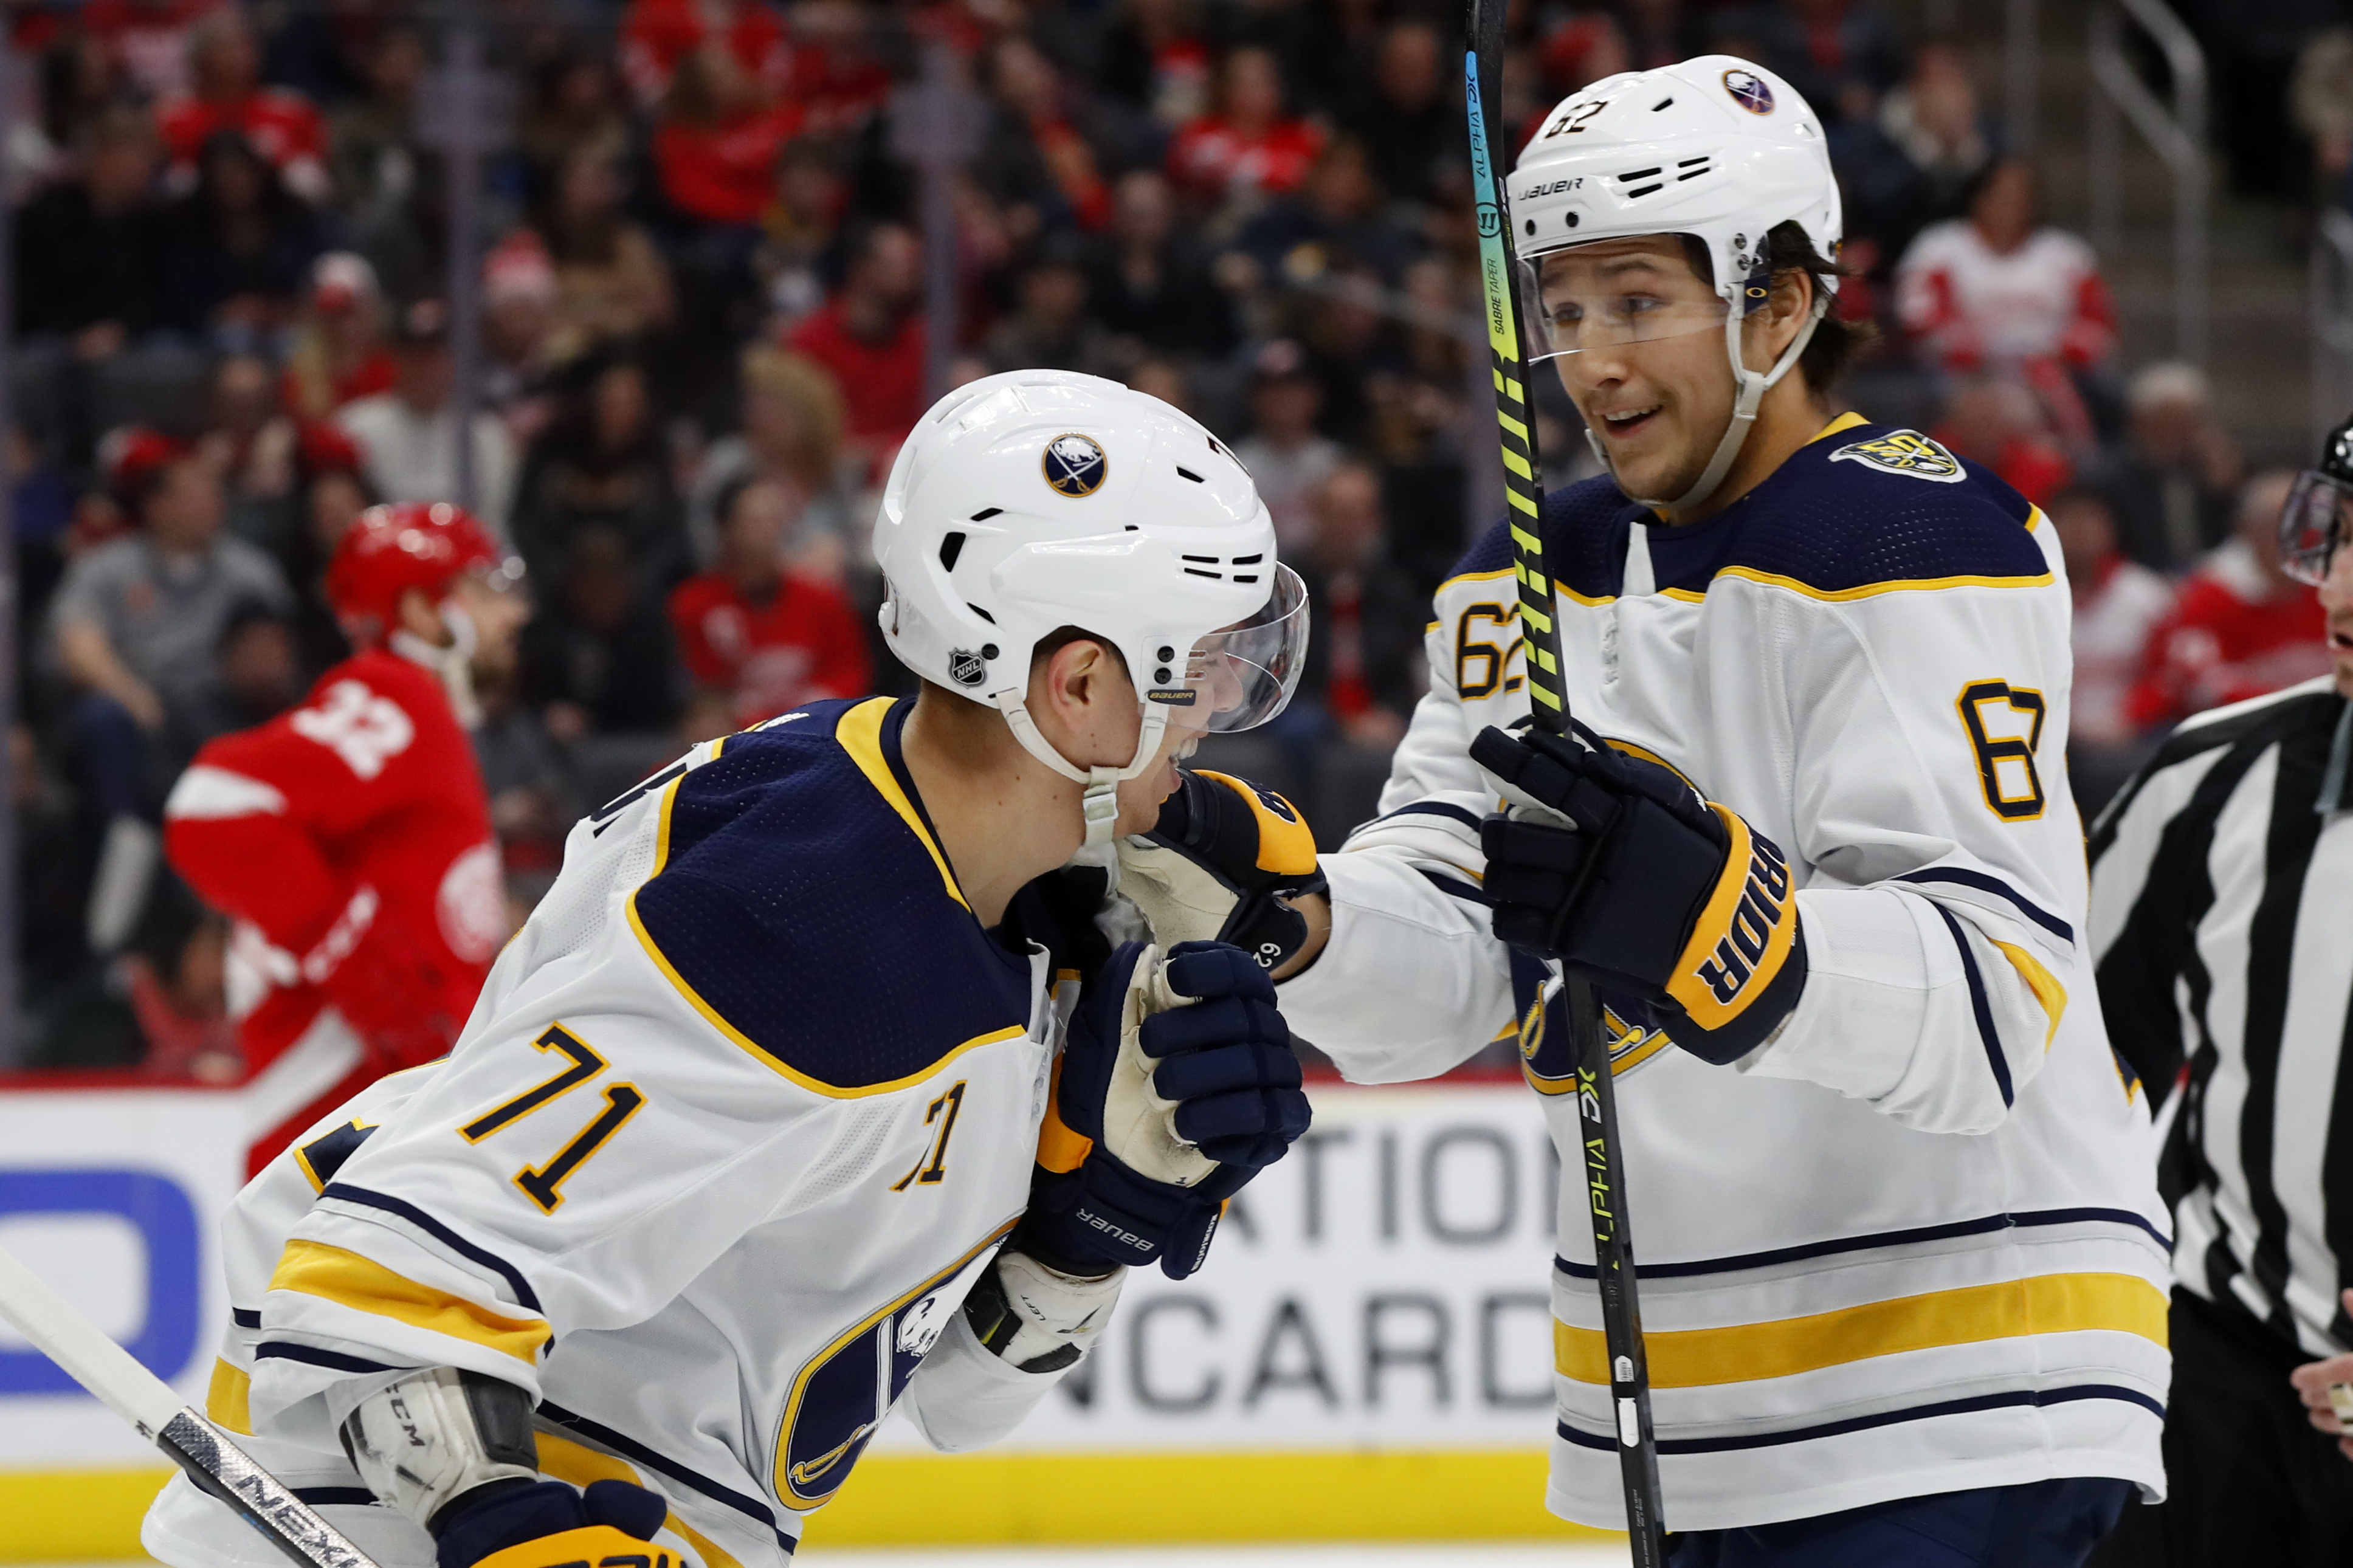 Rodrigues scores 2 goals to lift Sabres past Detroit 5-1